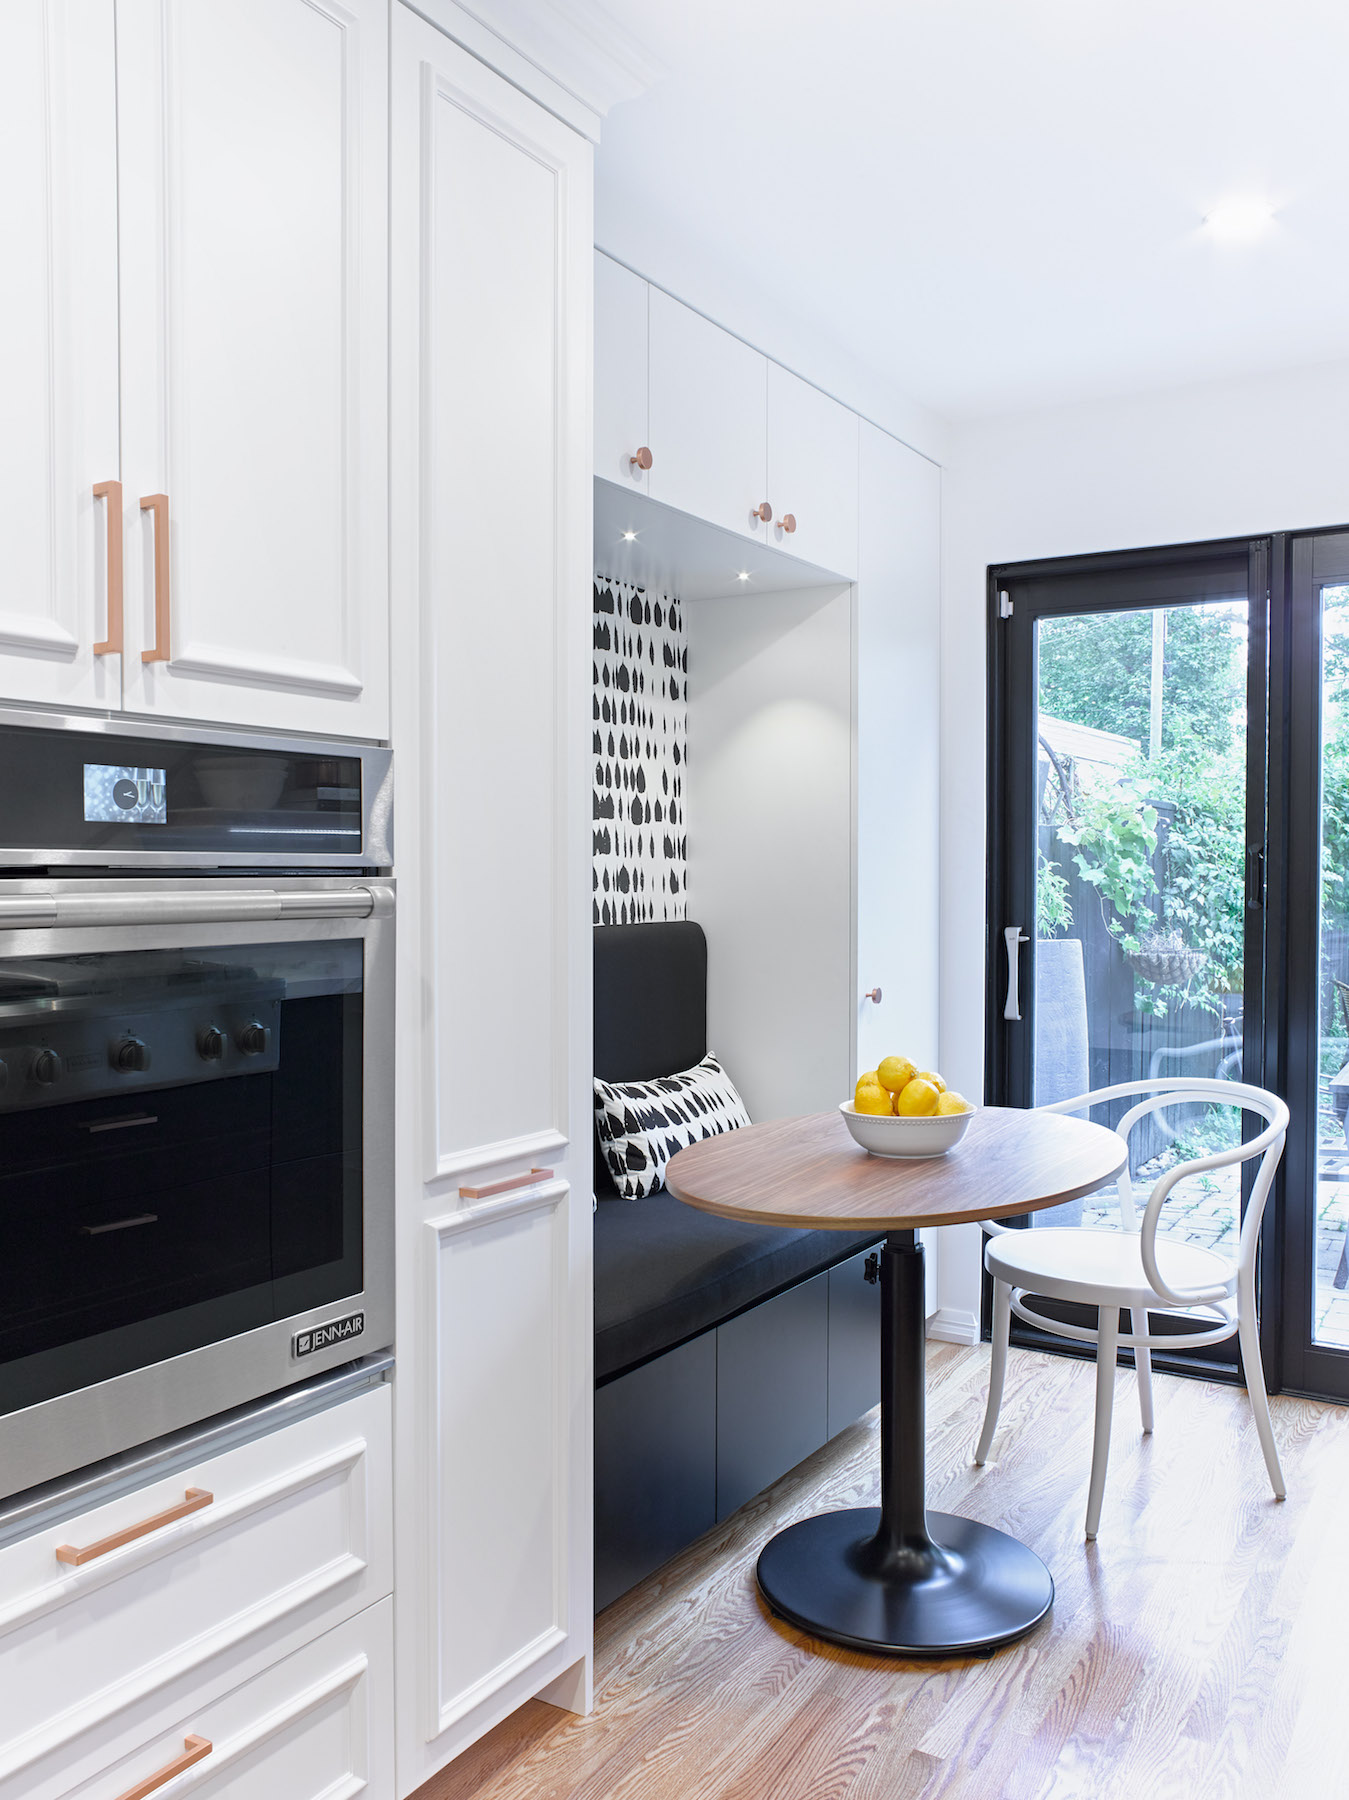 White Profile Cabinet with Wall Oven